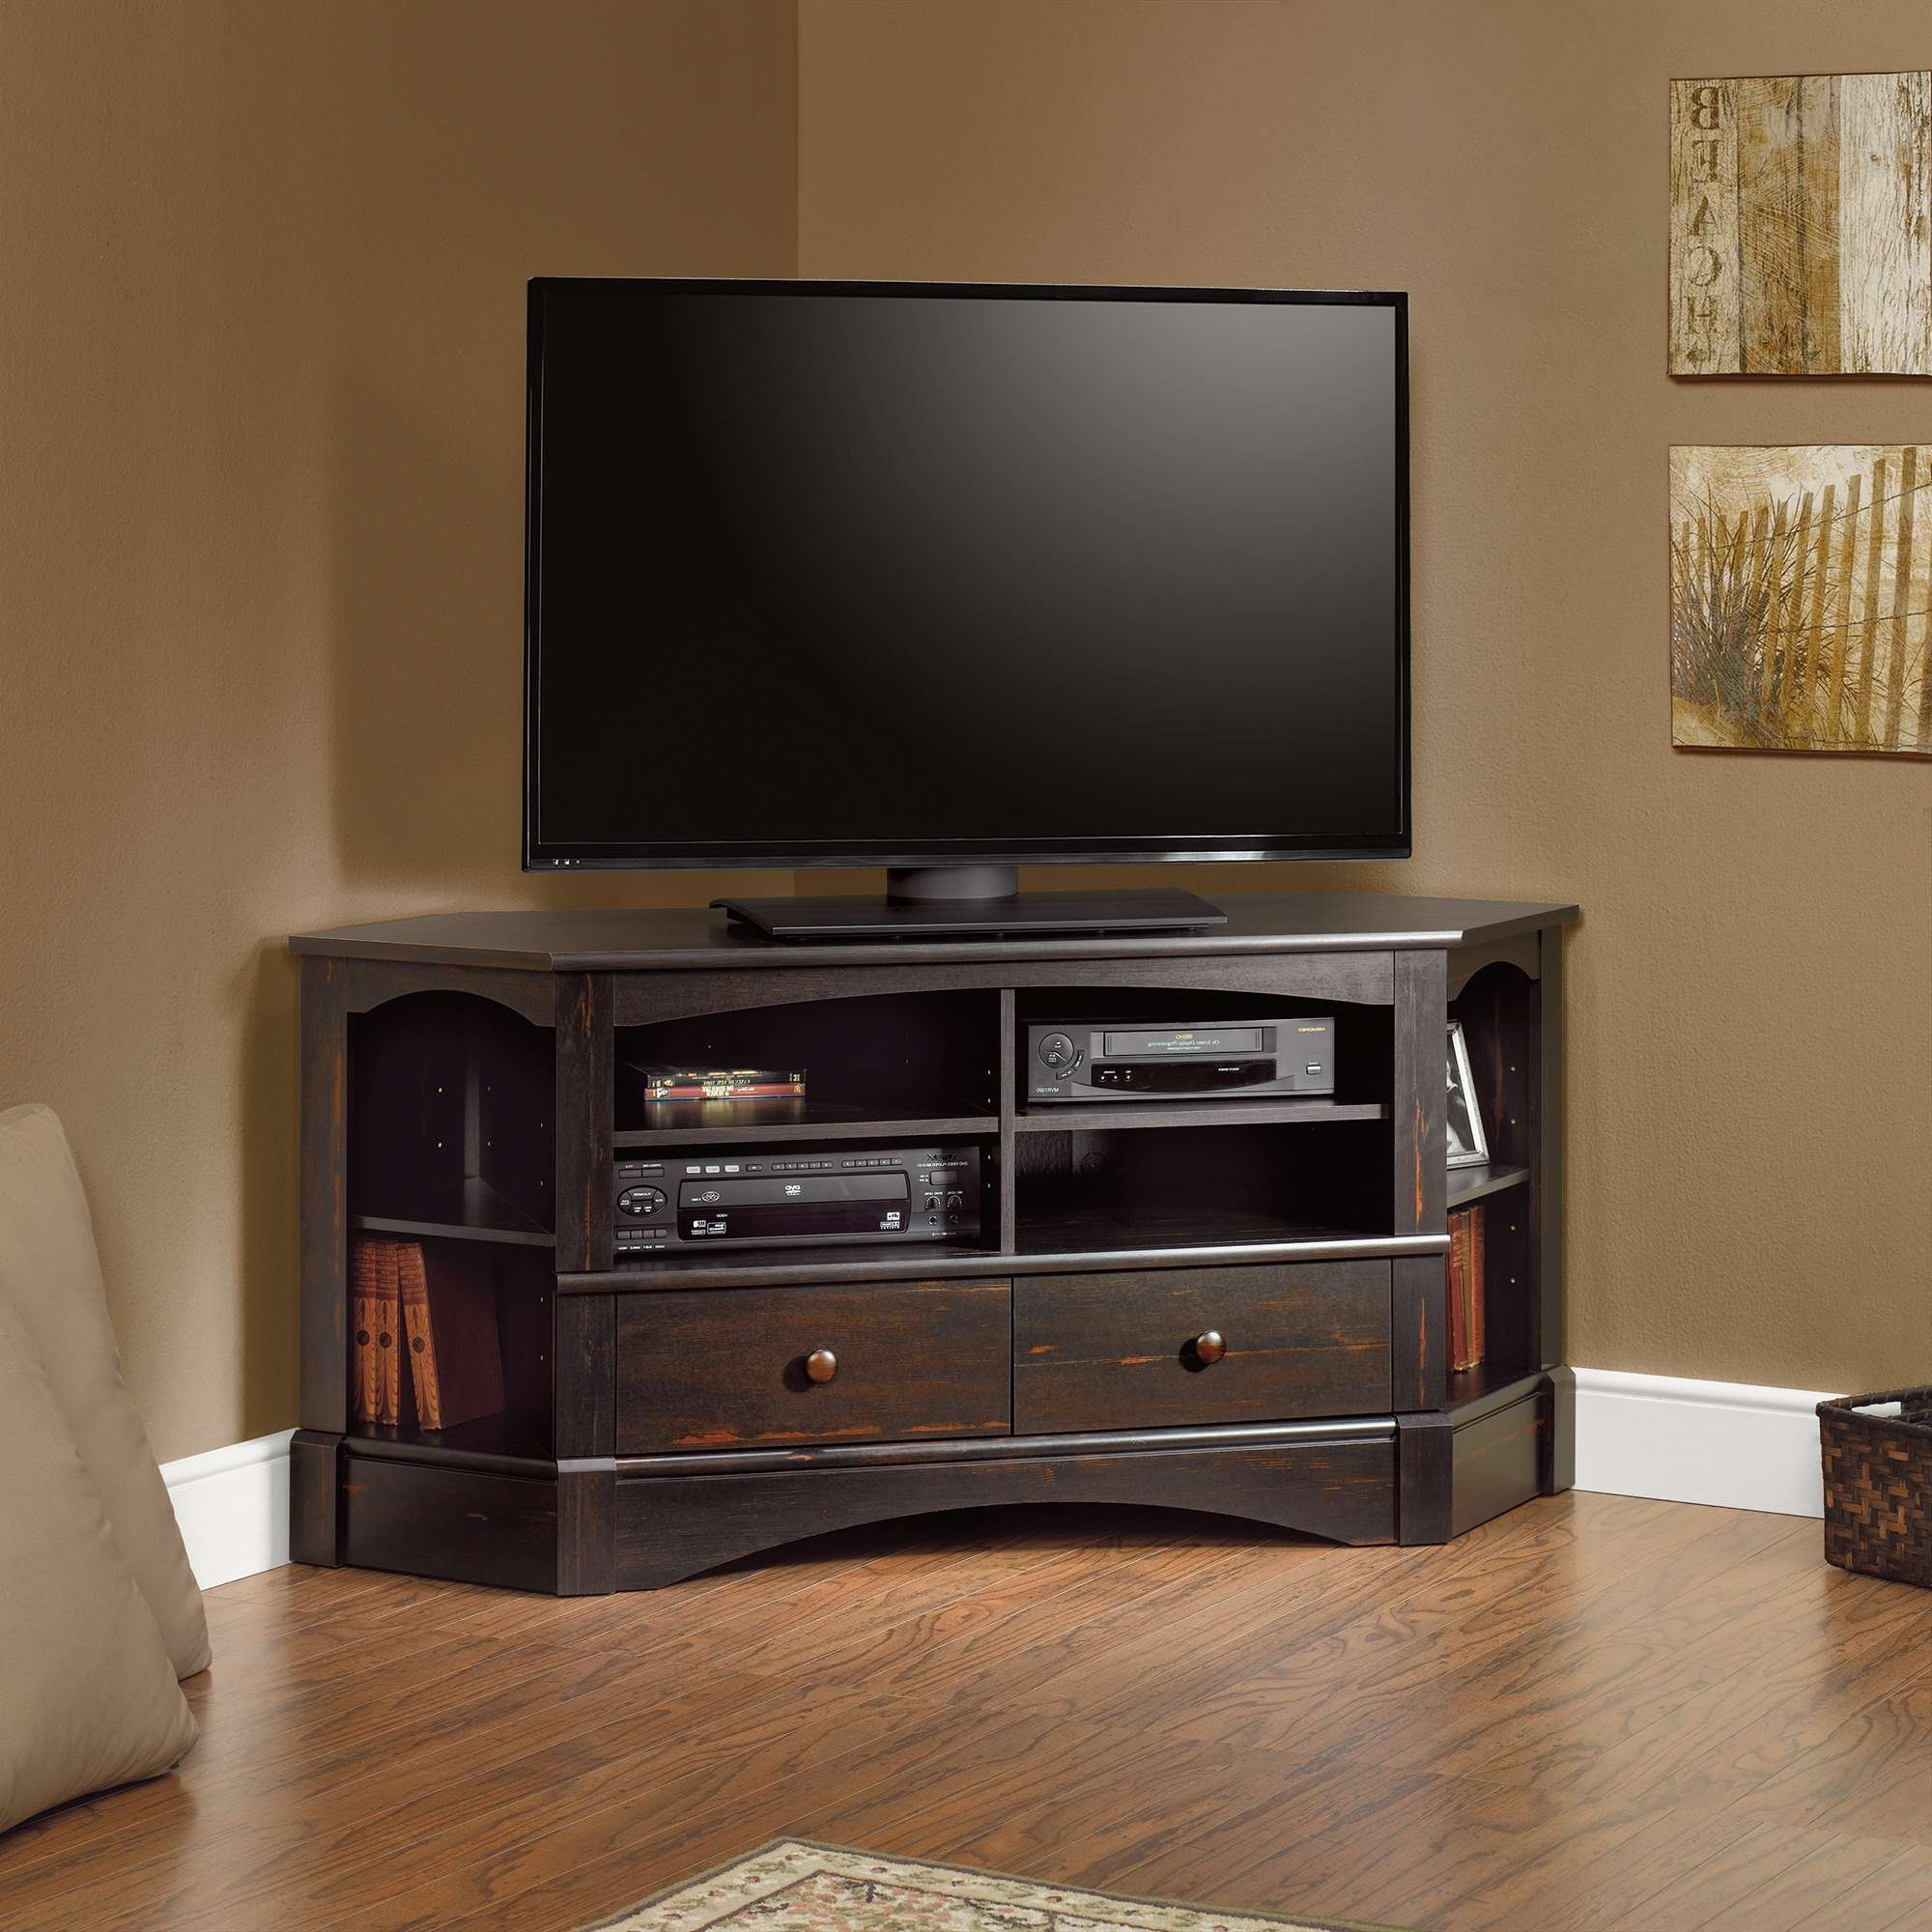 Harbor View | Corner Entertainment Credenza | 402902 | Sauder With Regard To Compact Corner Tv Stands (View 11 of 15)